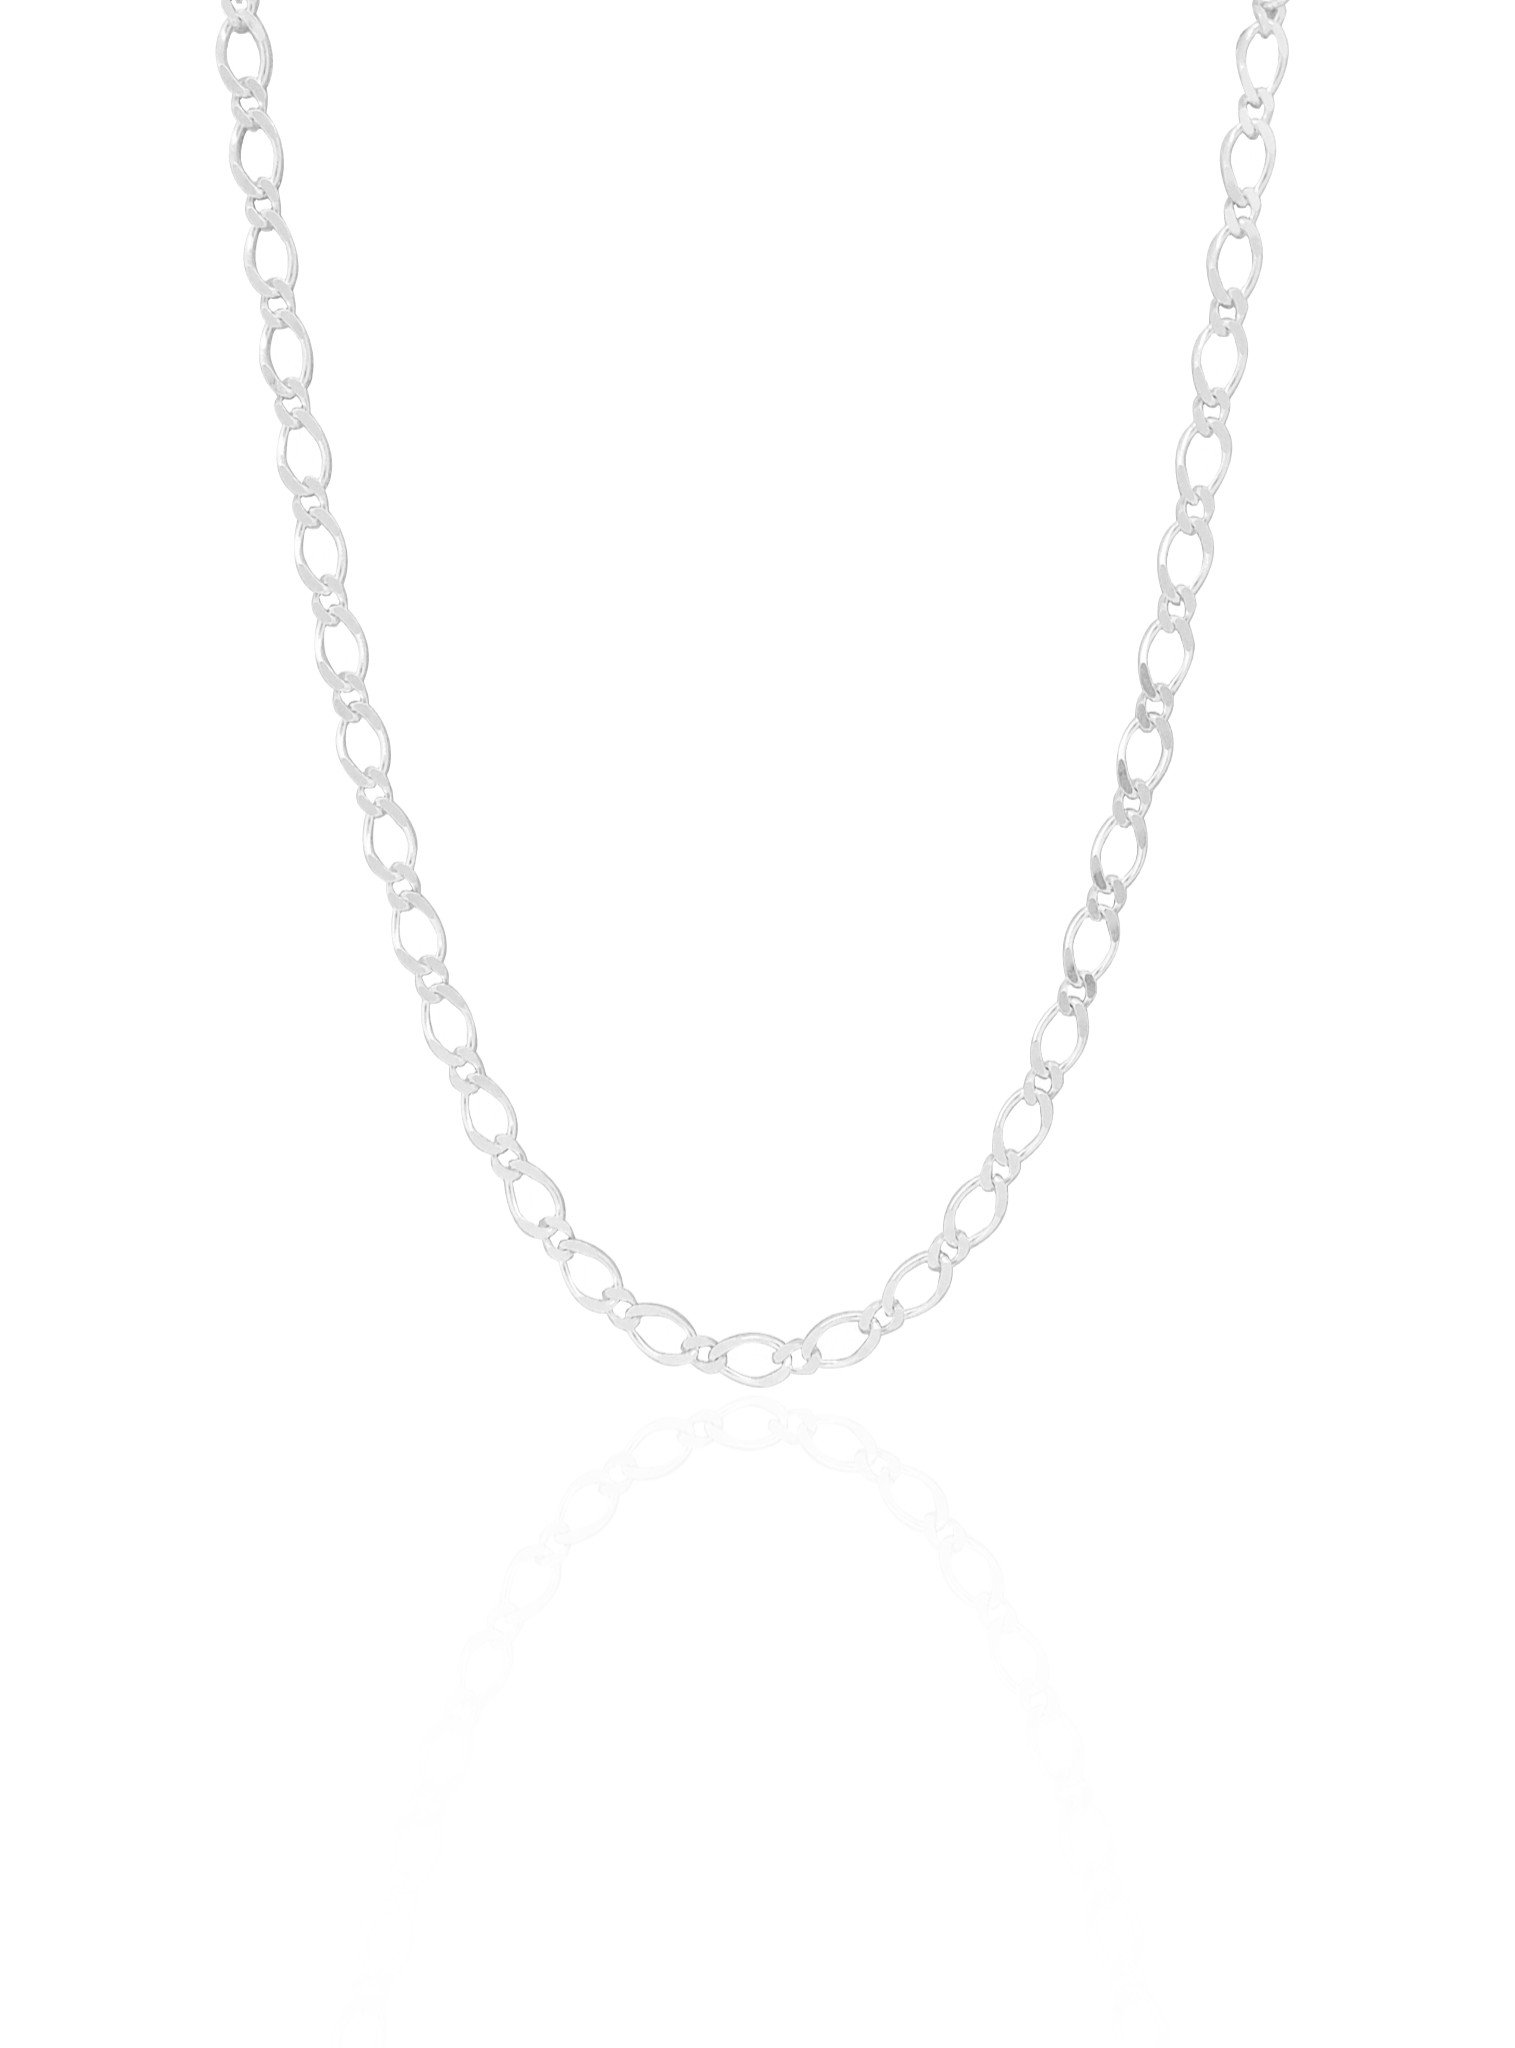 Reagan Curb Figaro Necklace Chain in Sterling Silver